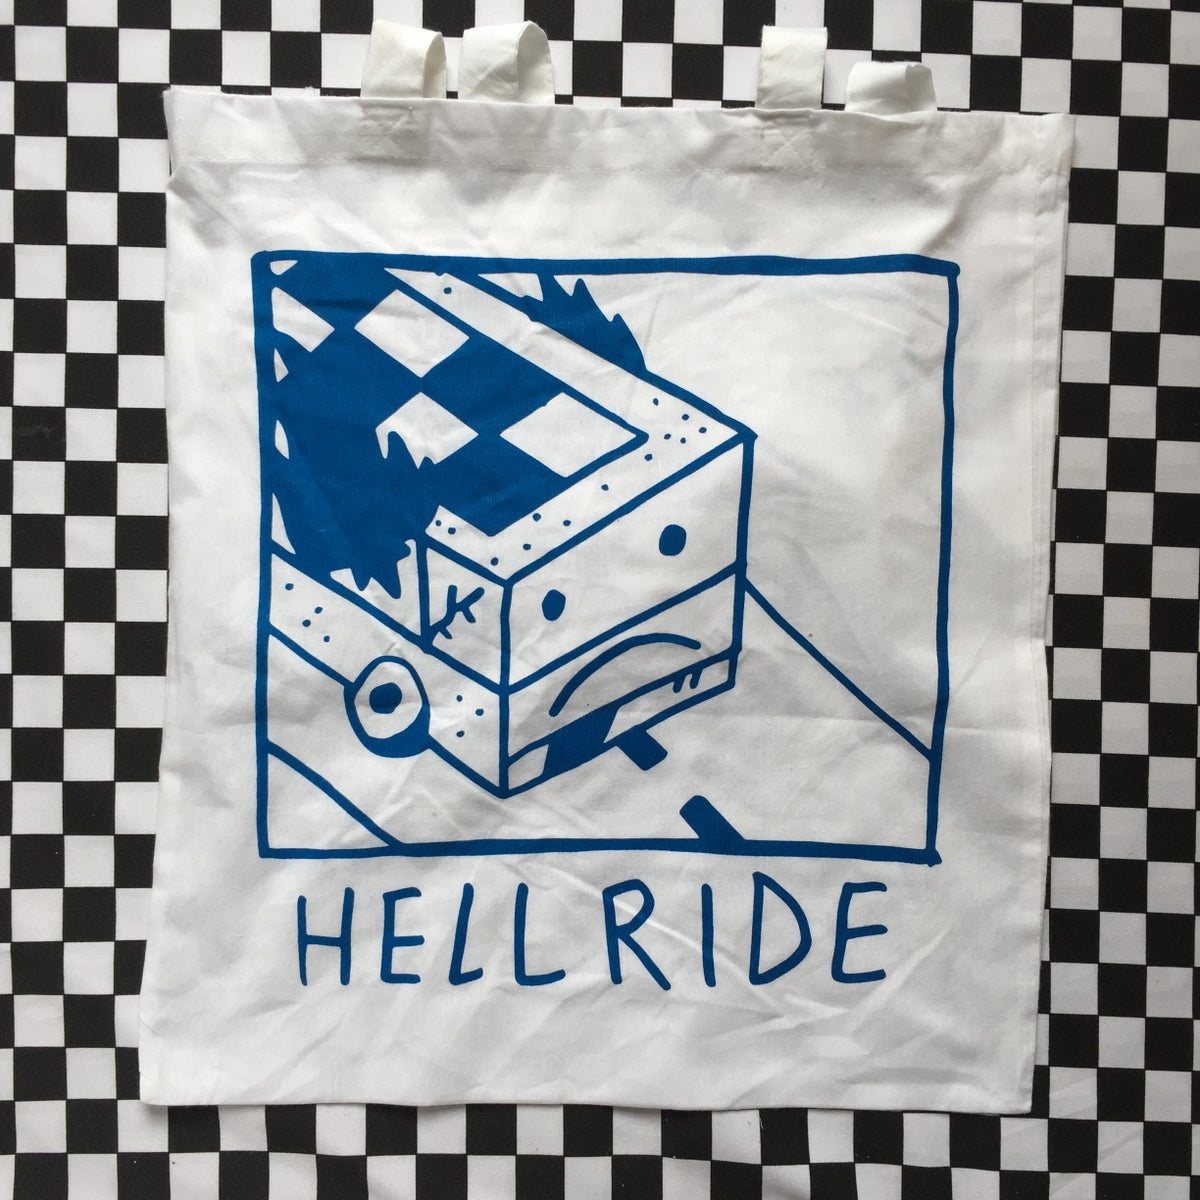 Image of Joyride/Hellride tote bag